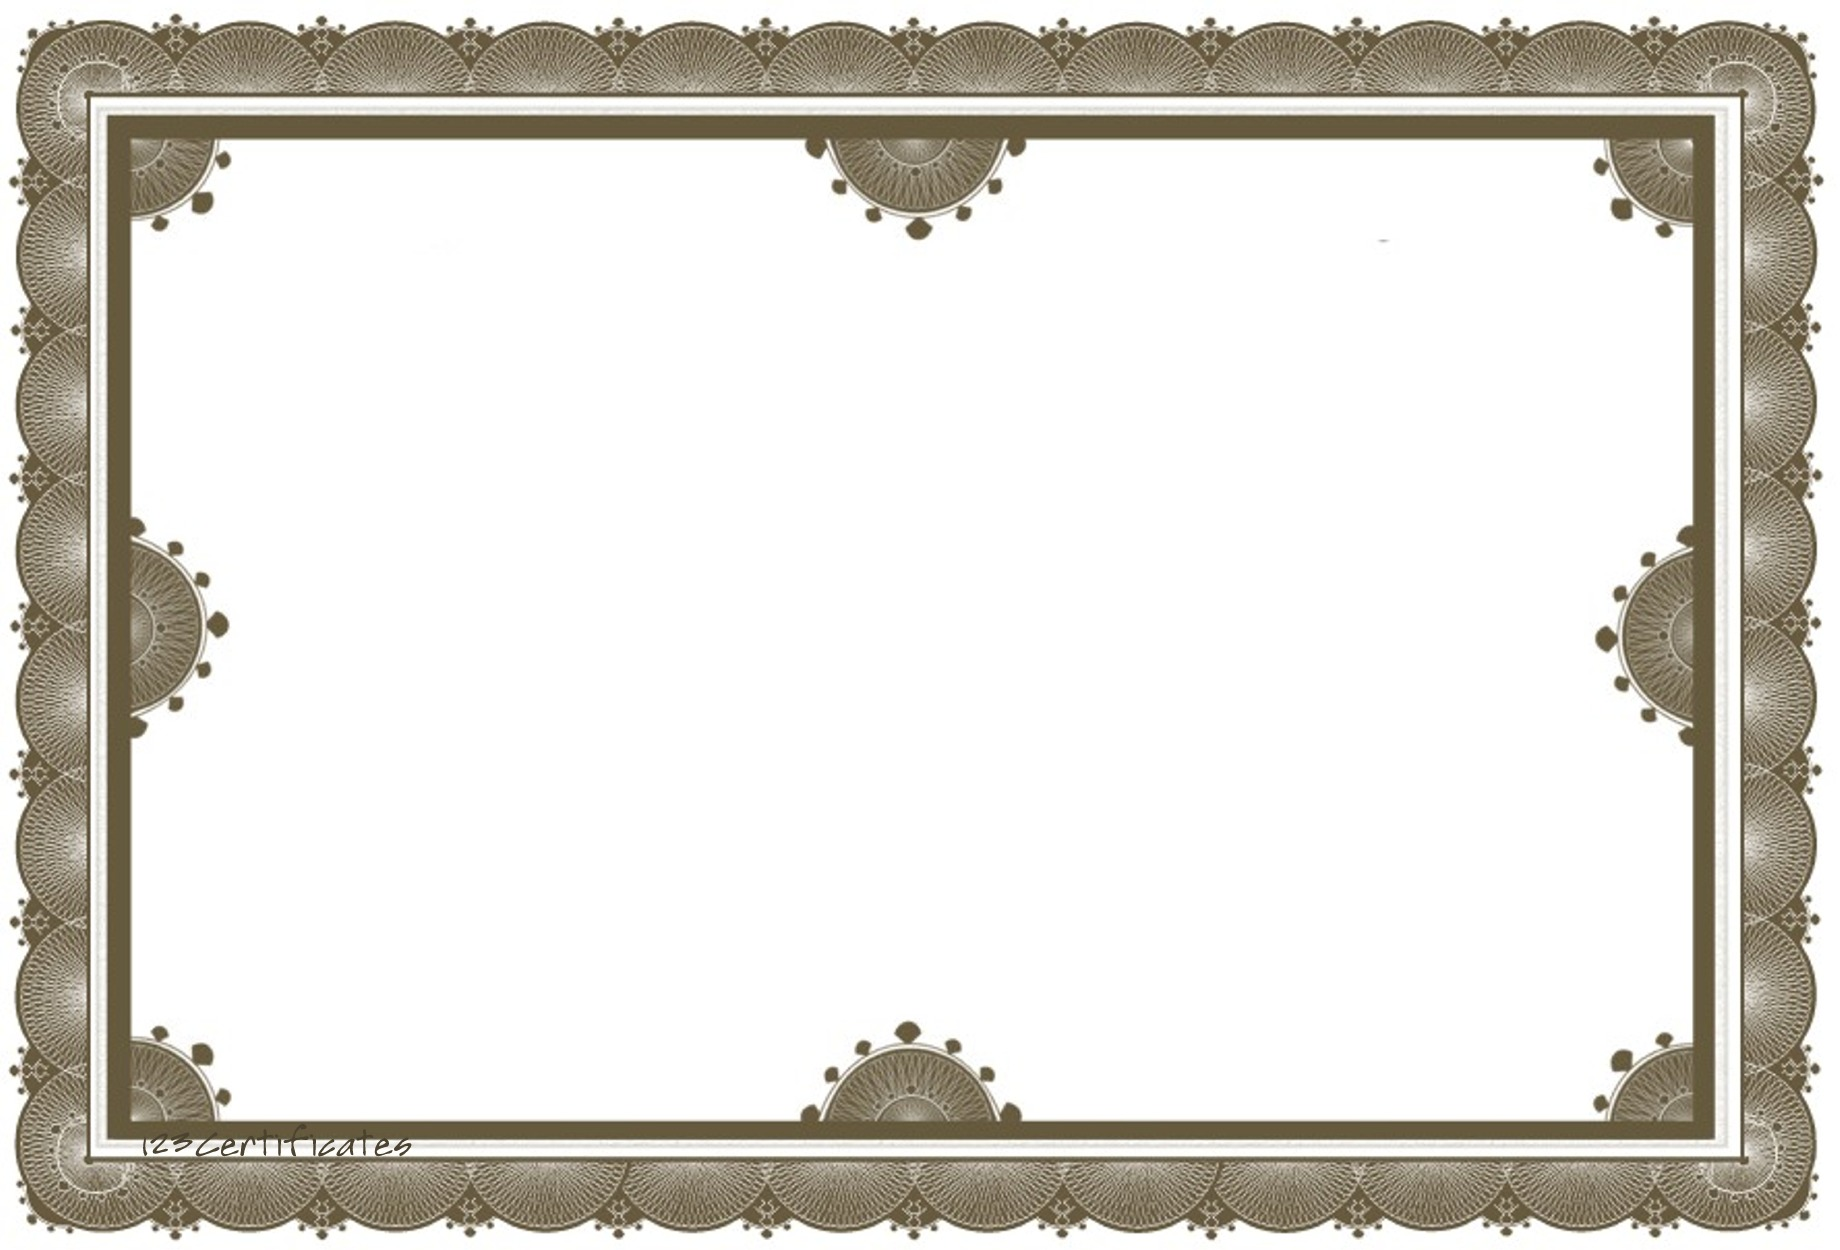 certificate borders to certificate templates for landscape jpg file · certificate borders